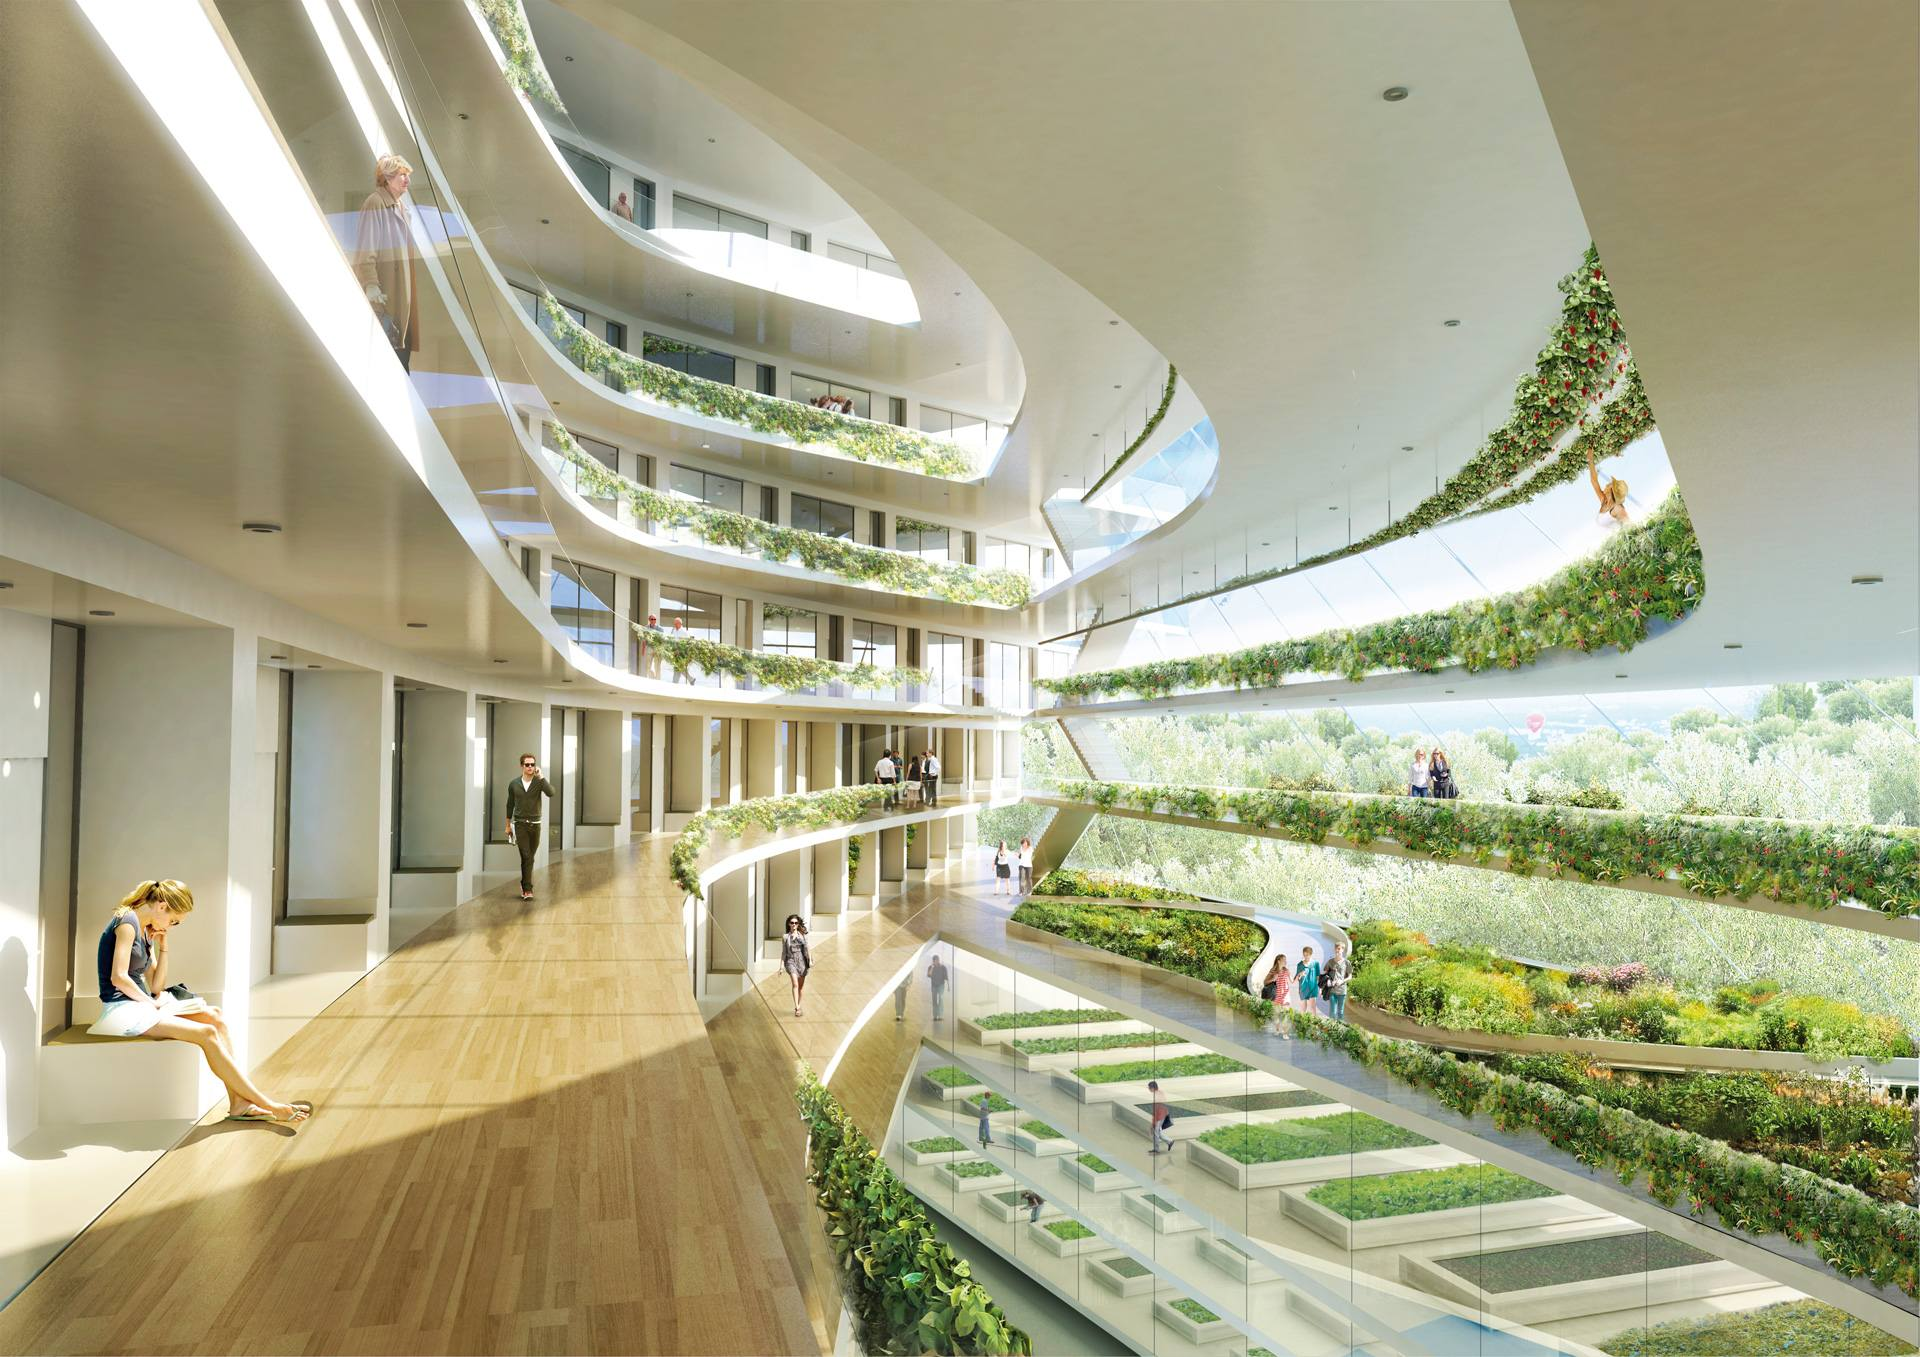 Green school stockholm air quality architectural design for School building design